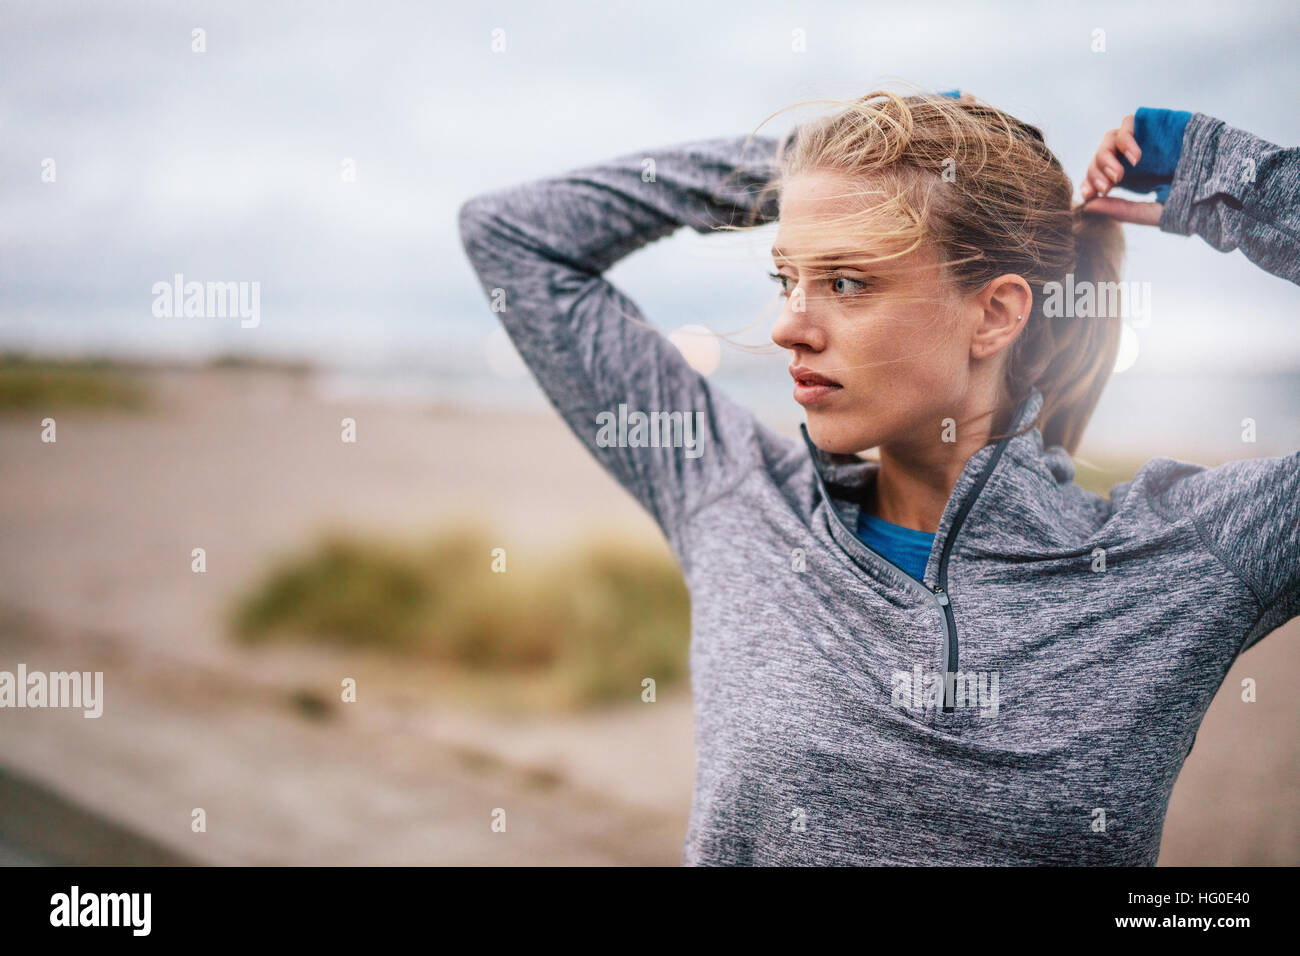 Close up of young female runner tying up hair before a run. Sporty fitness woman on outdoor workout looking away. - Stock Image